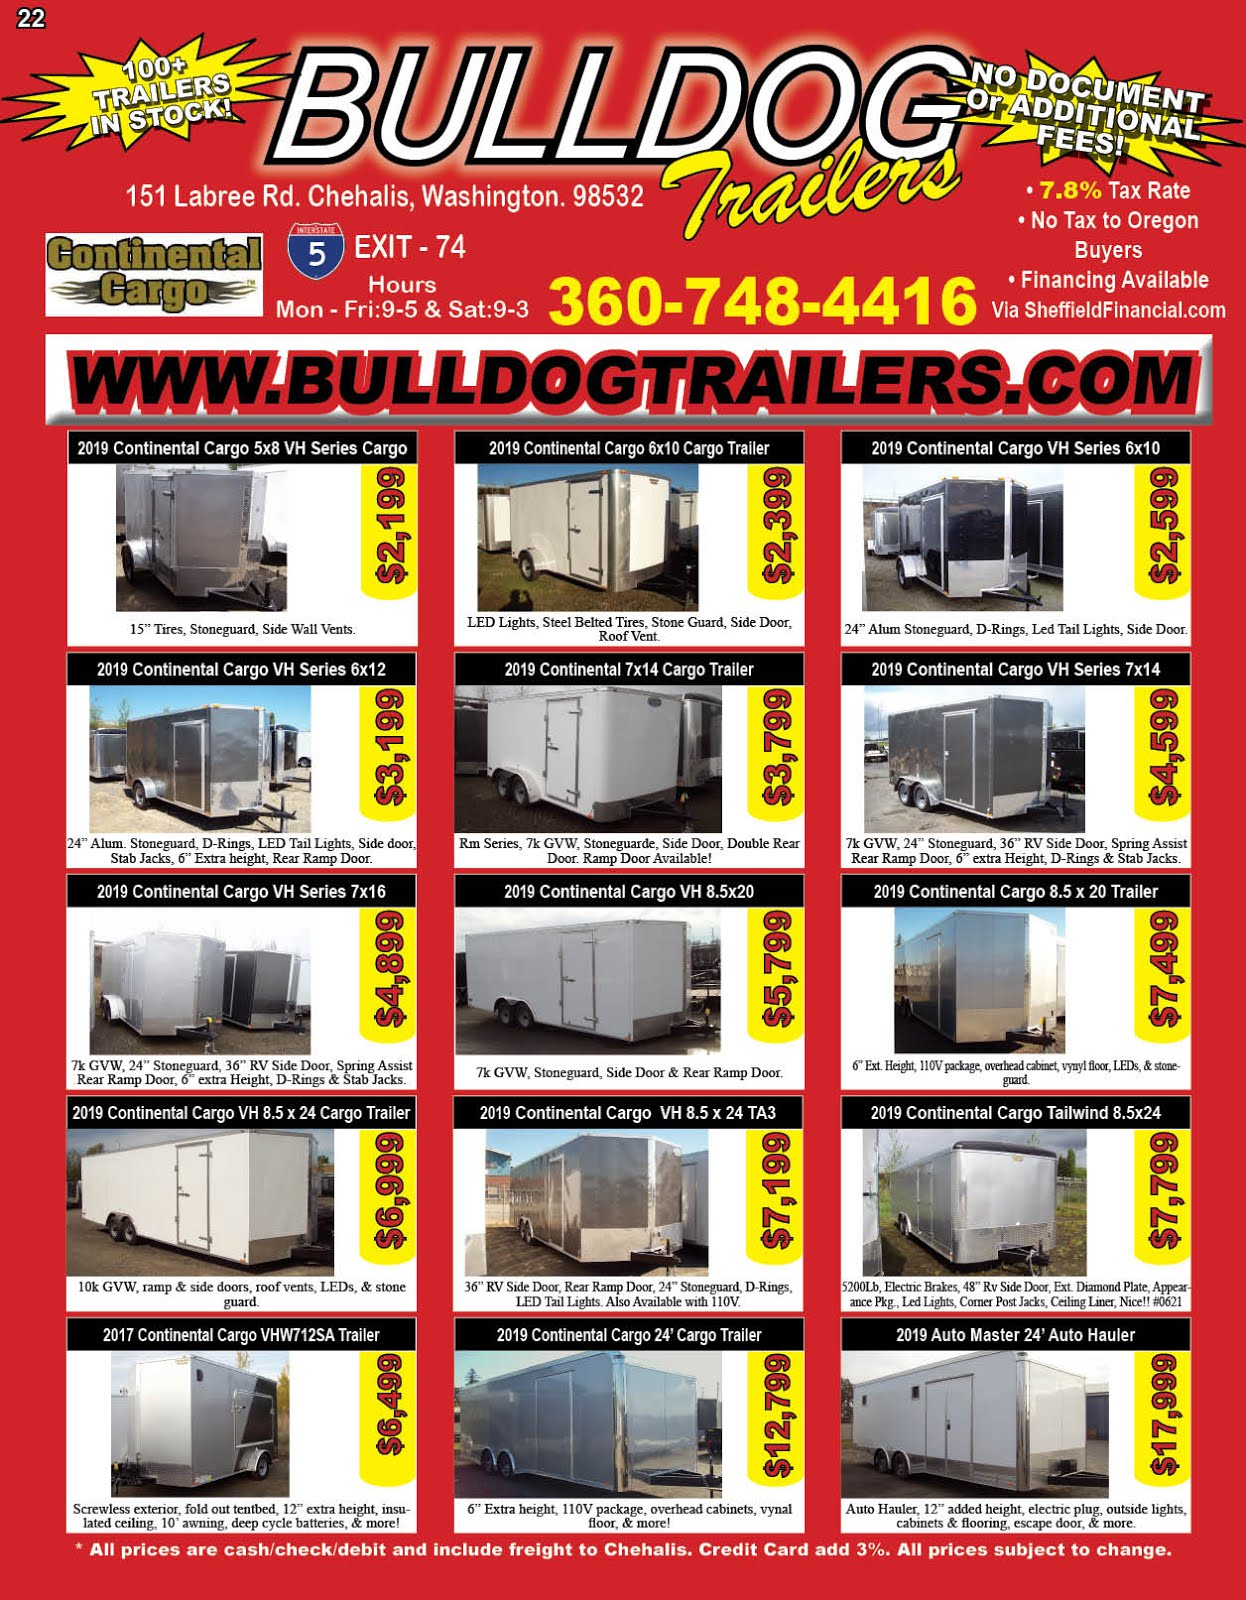 Bulldog Trailer Carries Continental Cargo Trailers!!